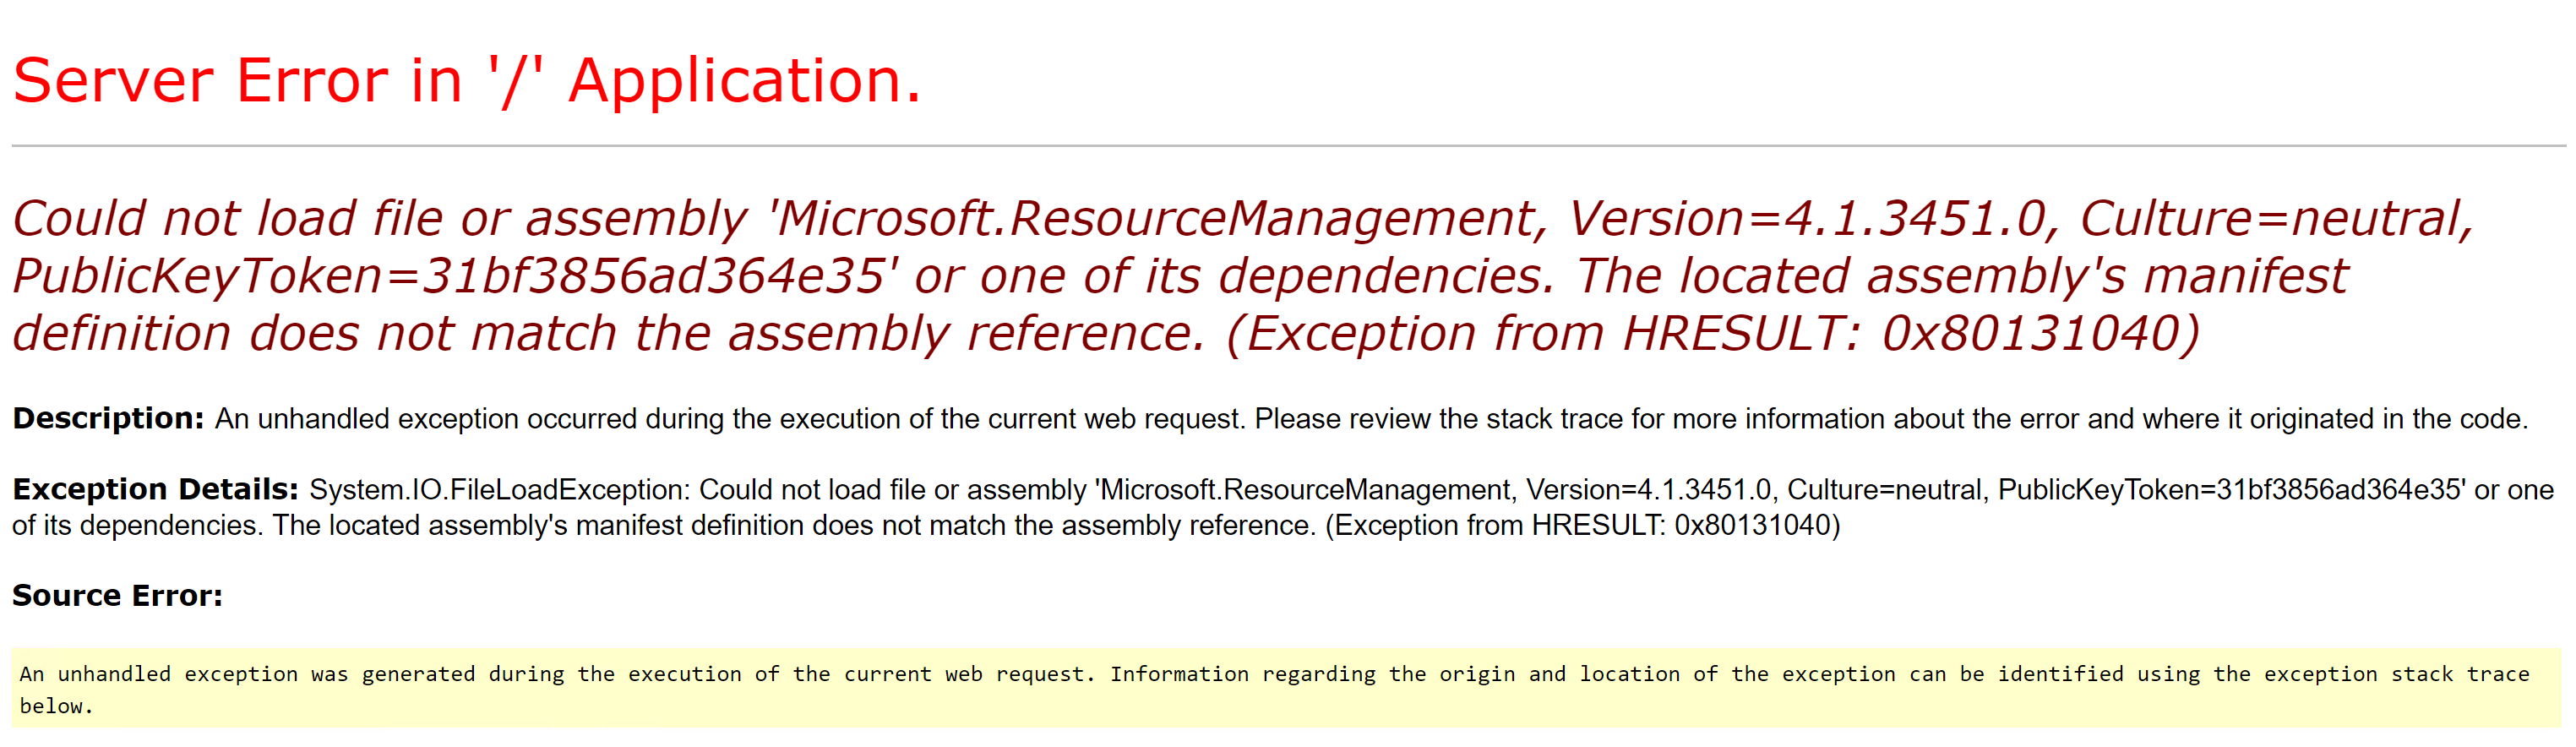 查找Microsoft.ResourceManagement dll.png时出错